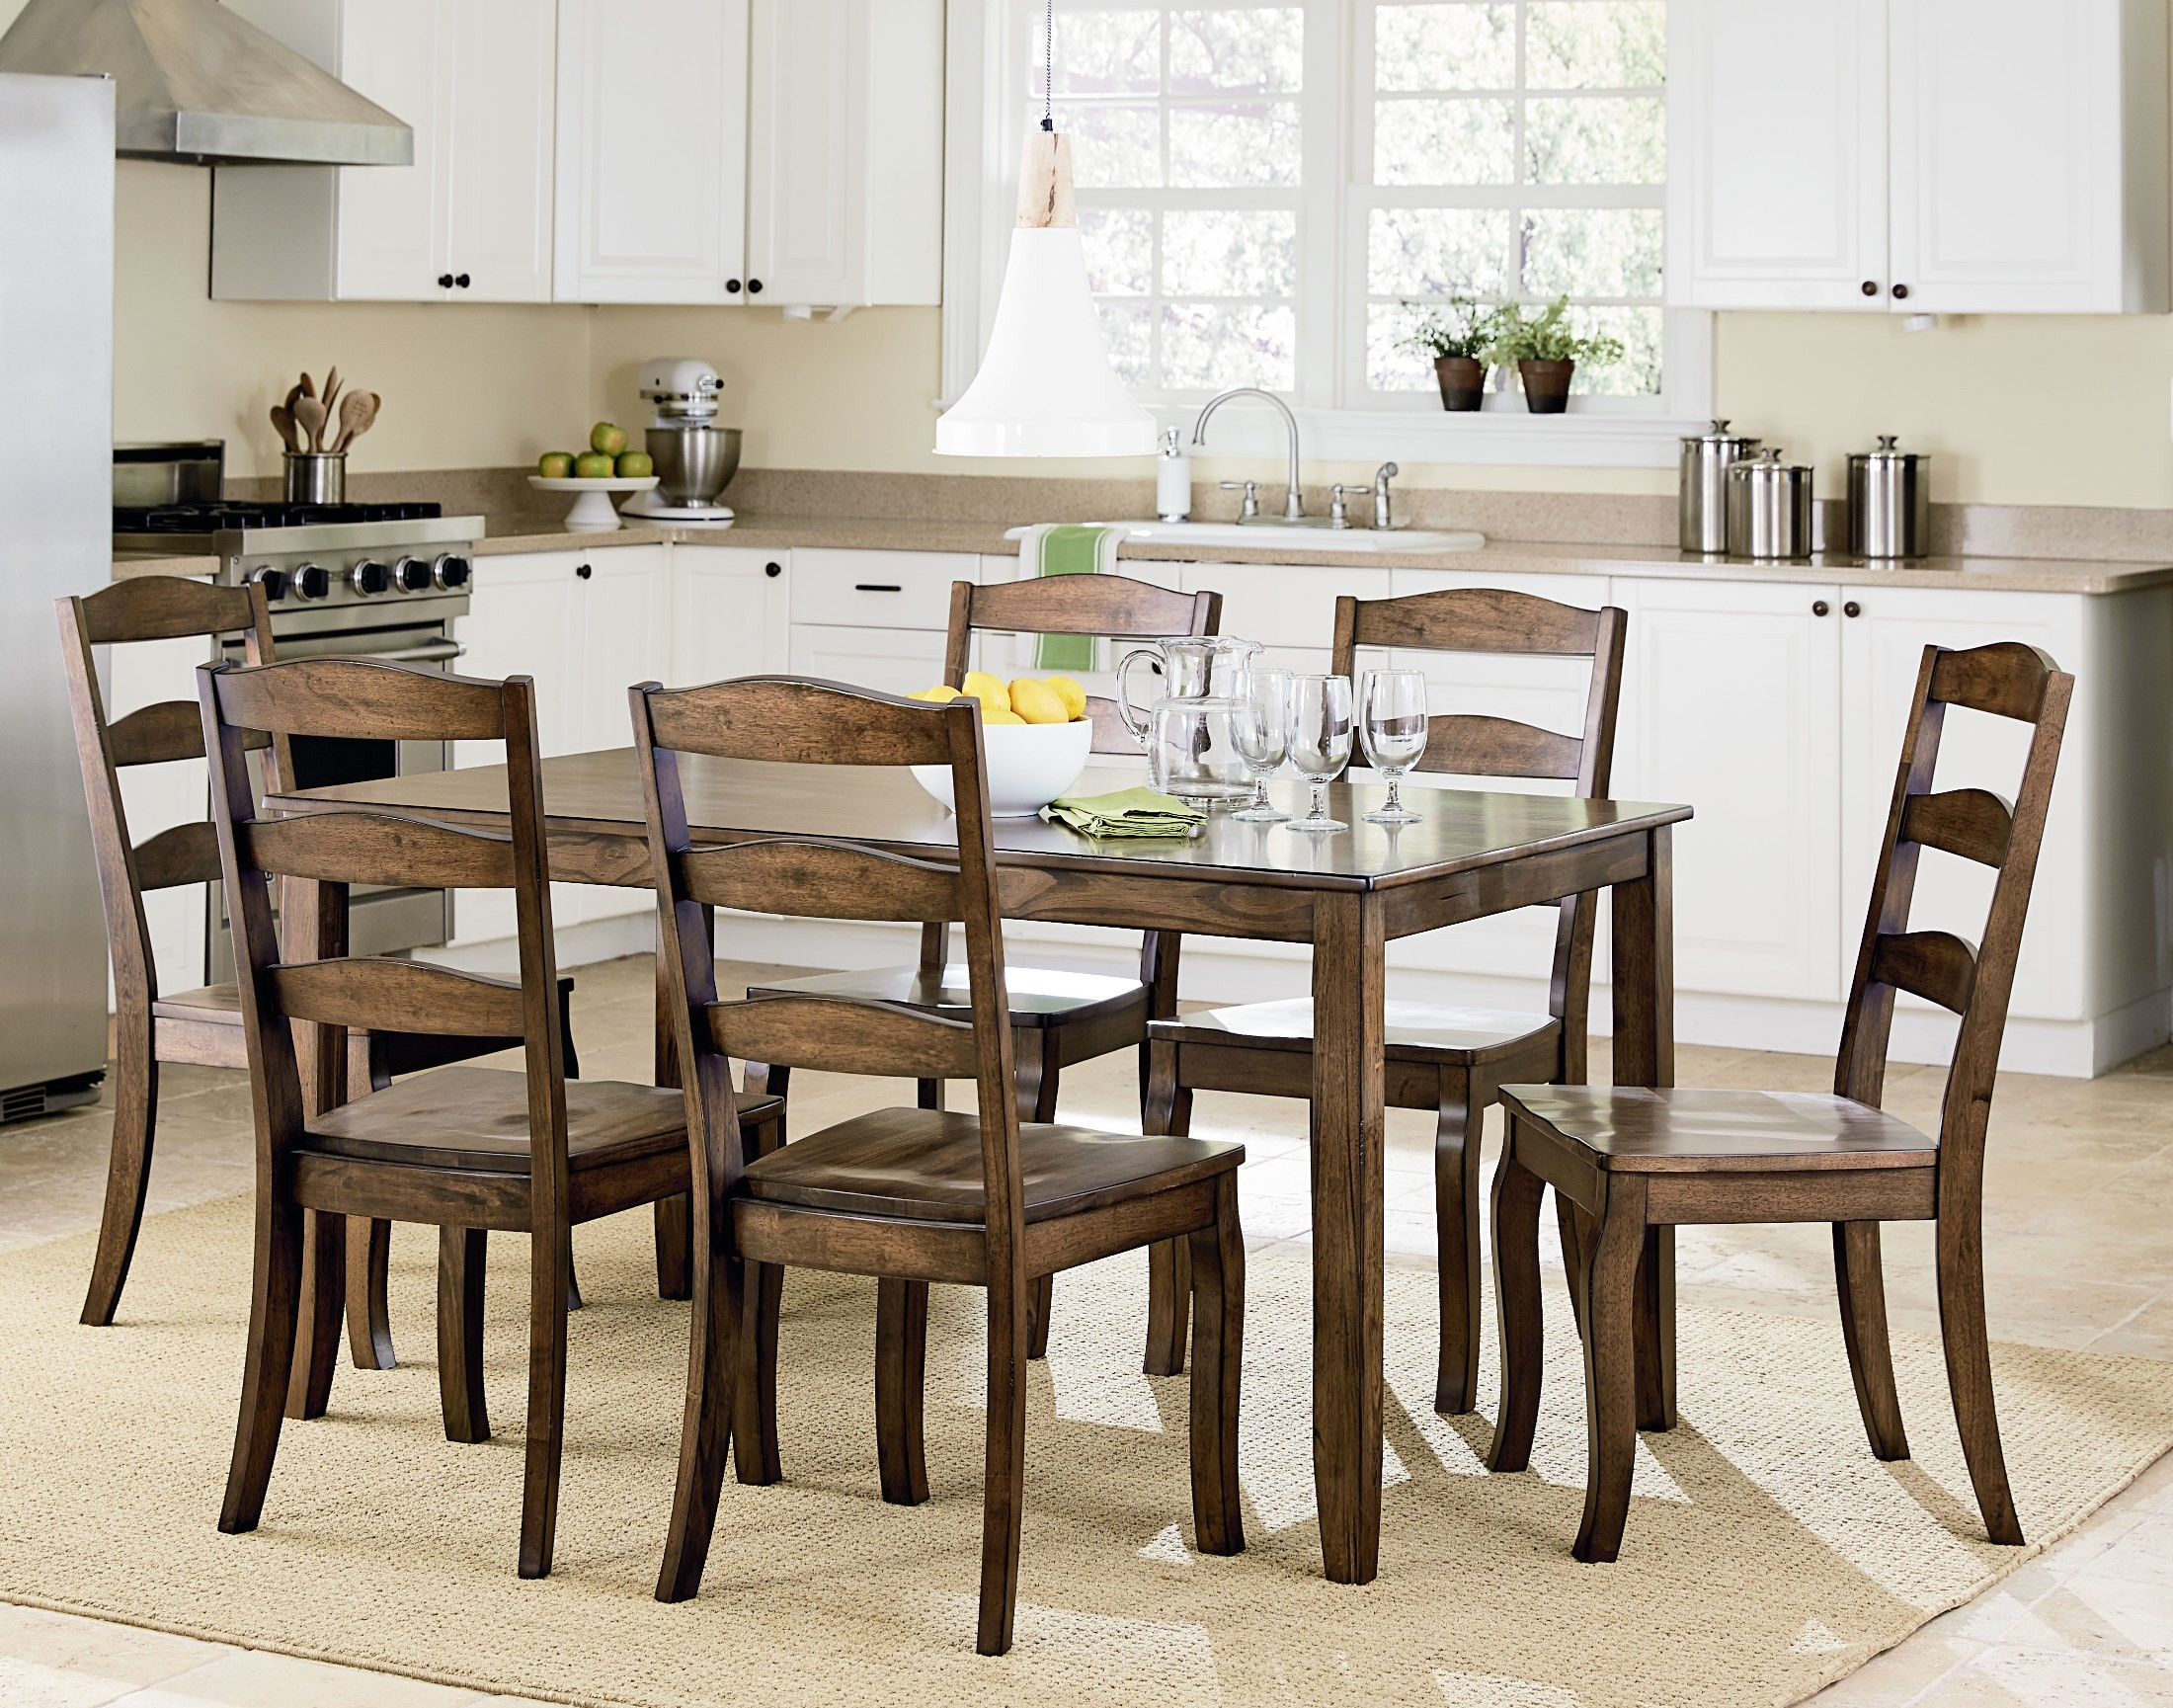 Highland brown 7 piece dining room set 16562 standard for 7 piece dining set